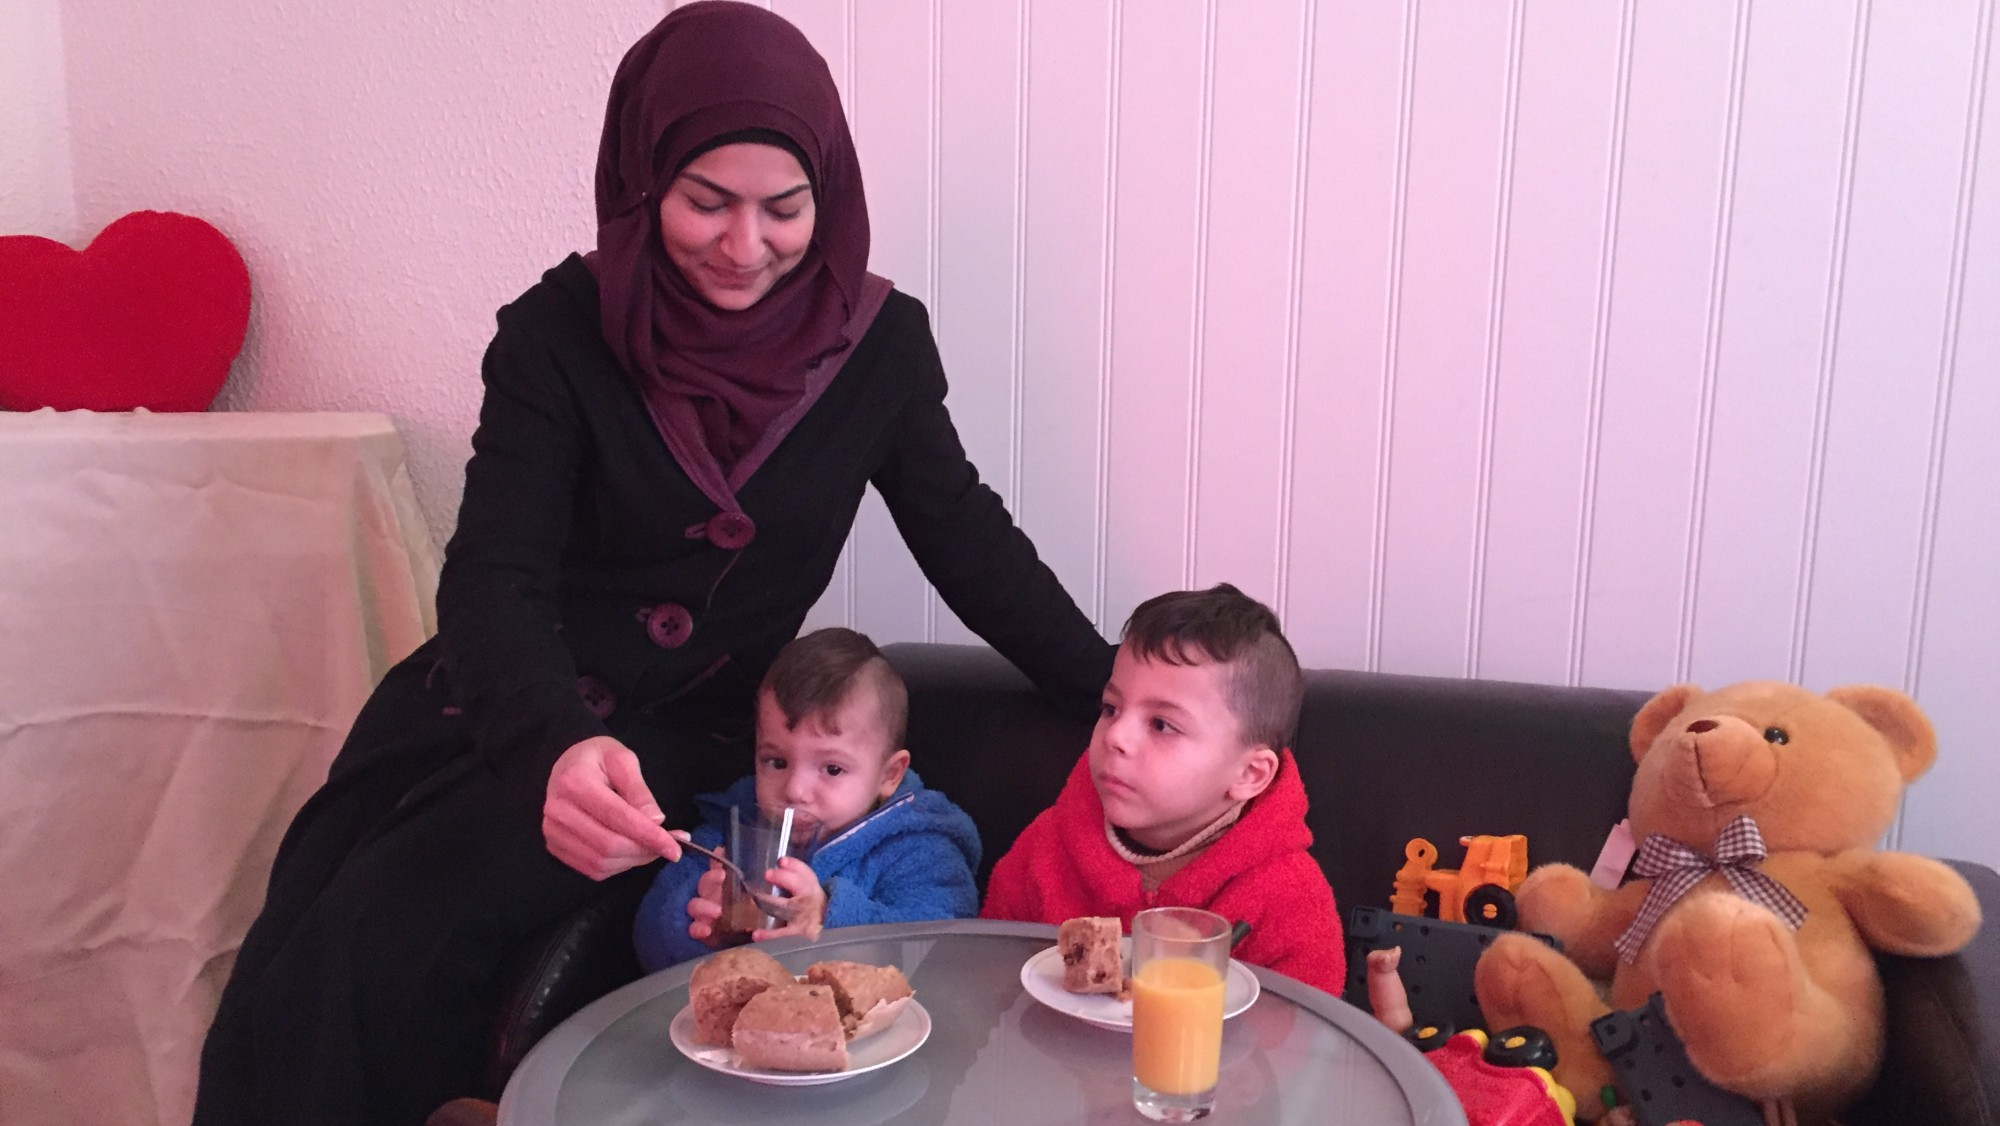 Photo: Jorun Vang / NRK Heba was a teacher in Syria; now she dreams of a teaching job in Norway.